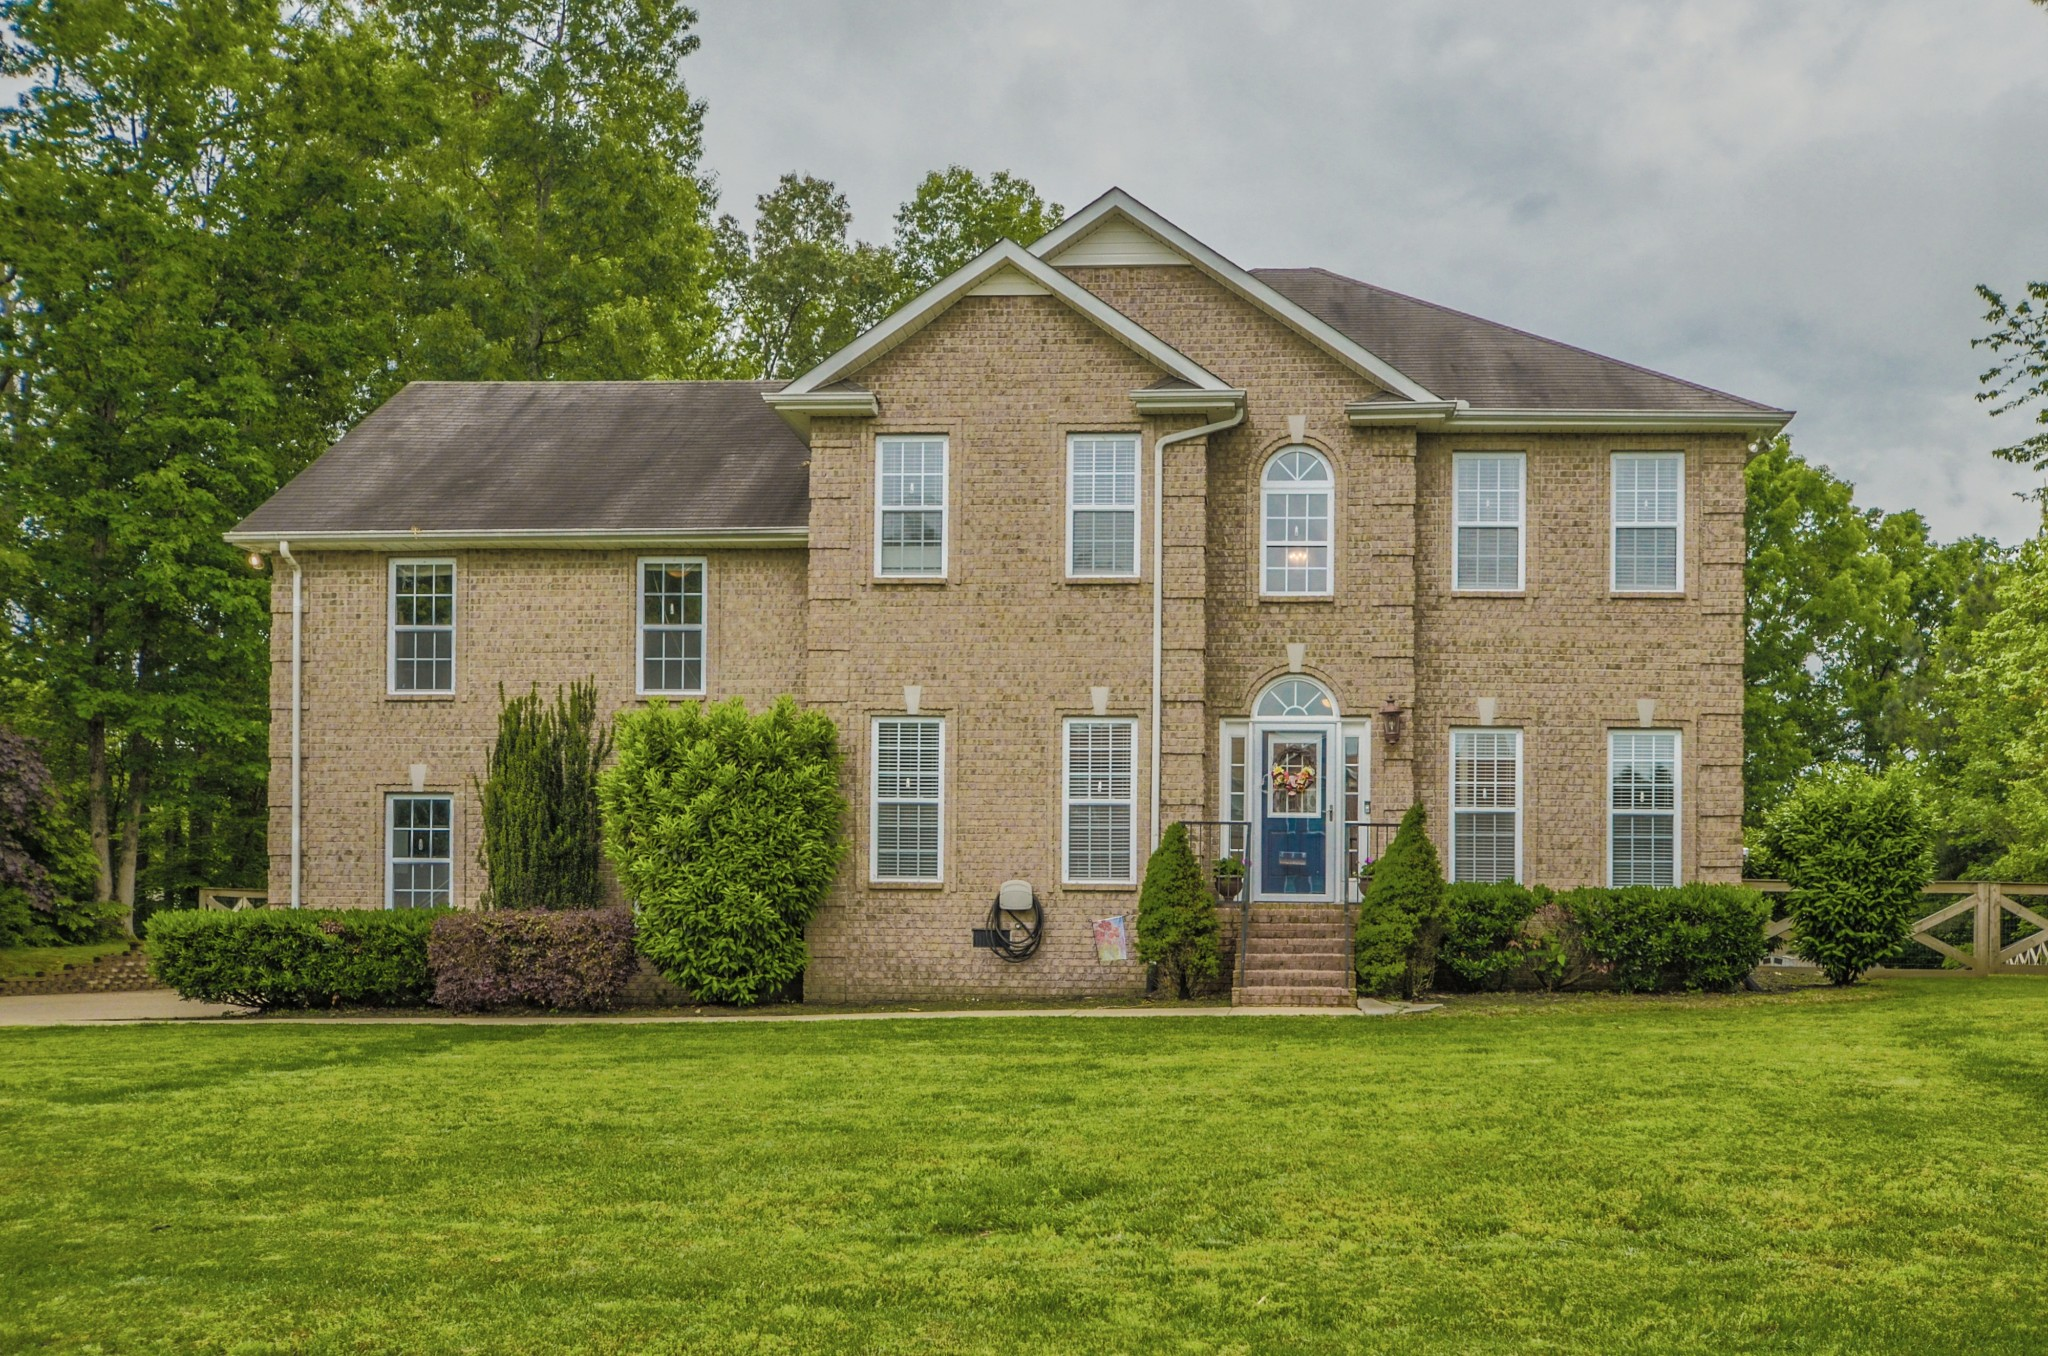 Homes For Sale in Sweetbriar Fairview TN